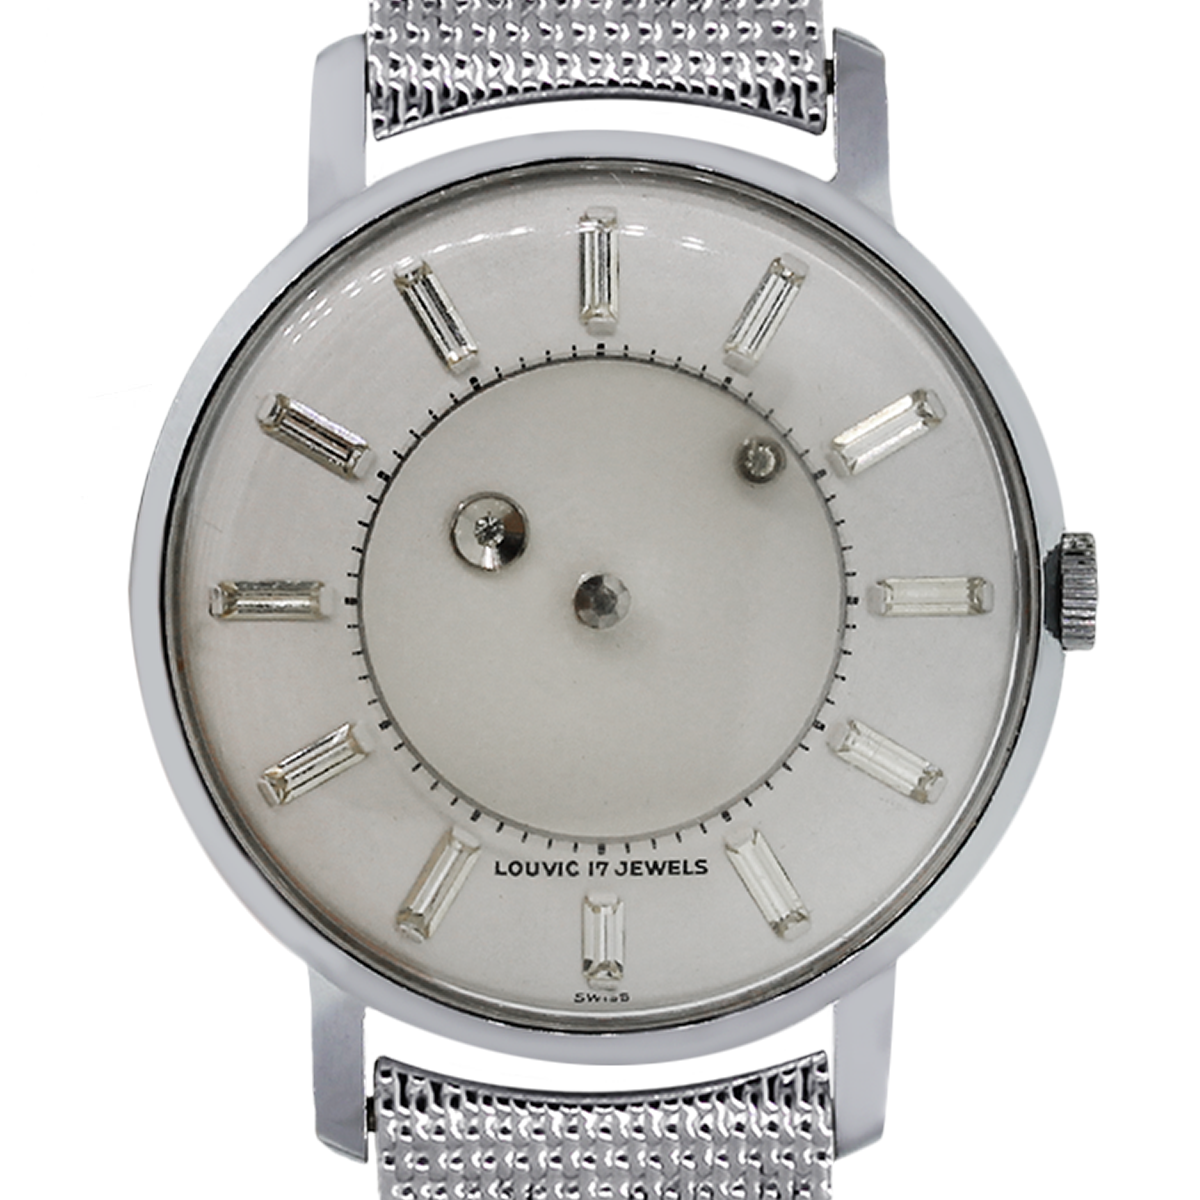 Louvic 17 Jewels Stainless Steel Mystery Dial Mens Watch